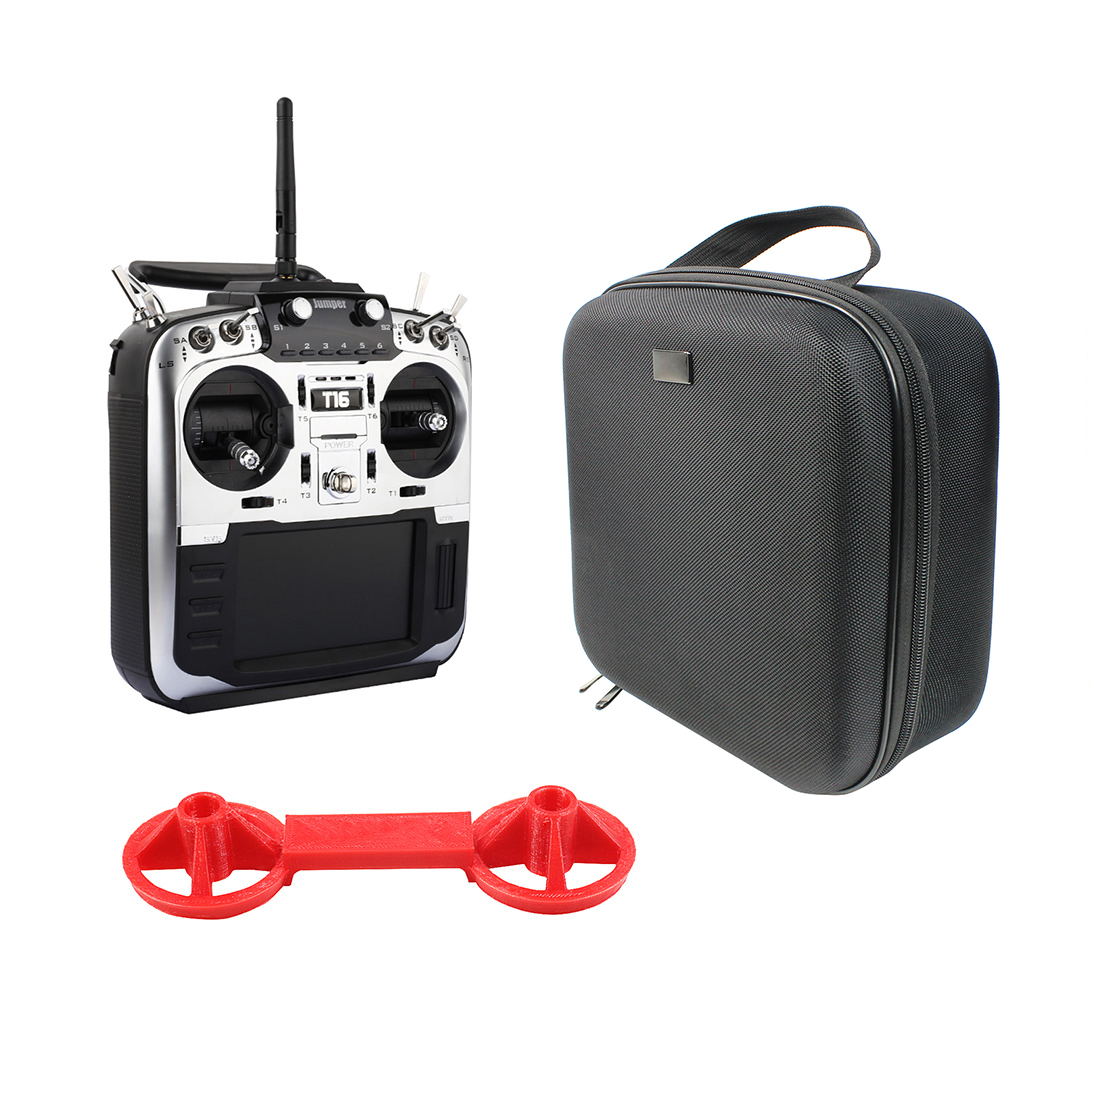 Jumper T16 Pro Hall Gimbal Open Source Multi-protocol Radio Transmitter JP4-in-1 RF Module 2.4G 16CH Remote Controller